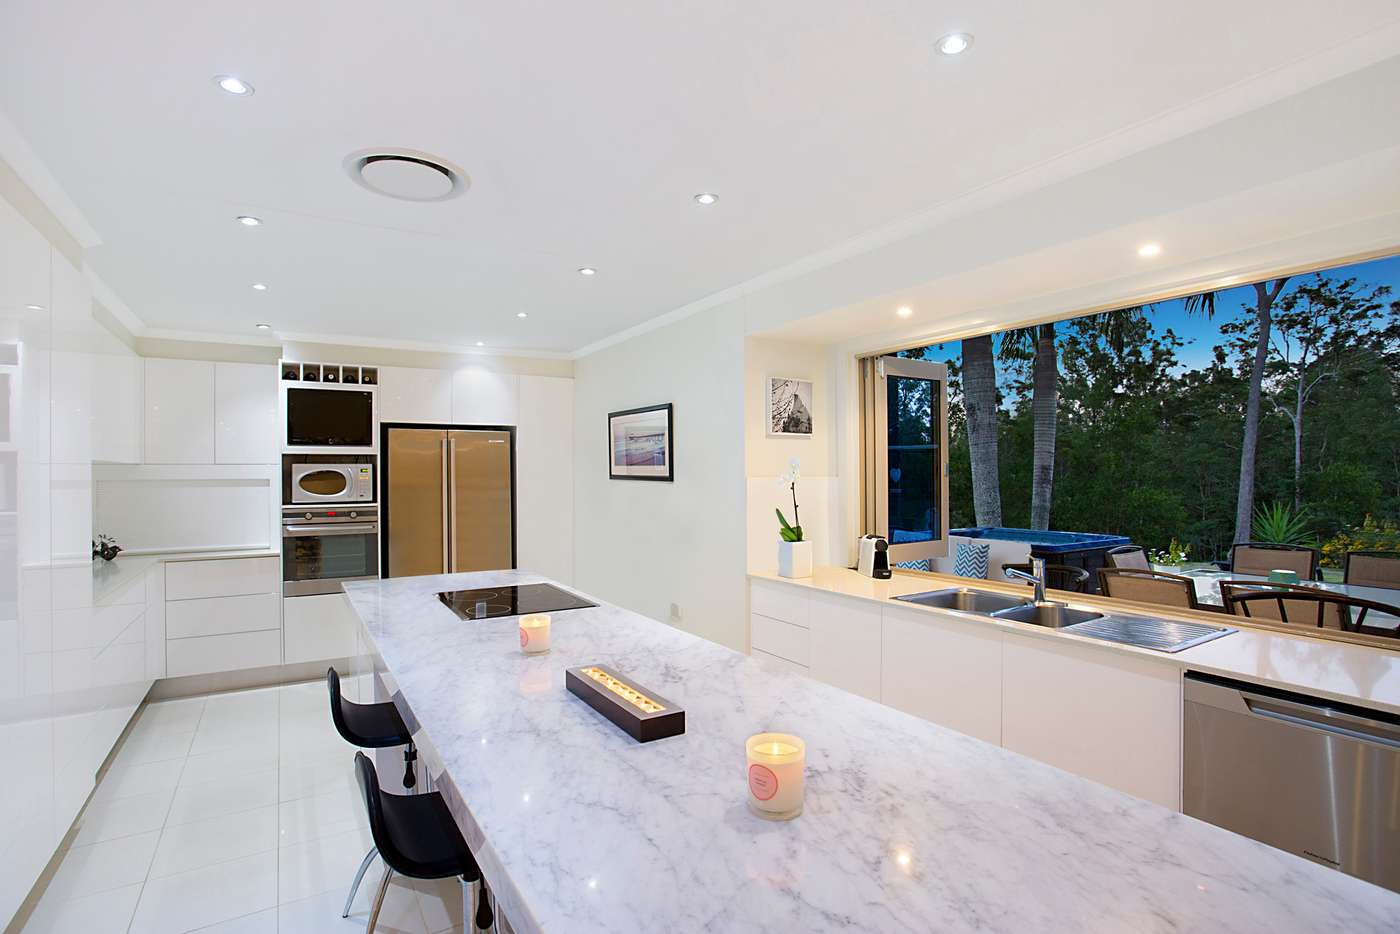 Sixth view of Homely house listing, 16 Carrama Court, Mudgeeraba QLD 4213